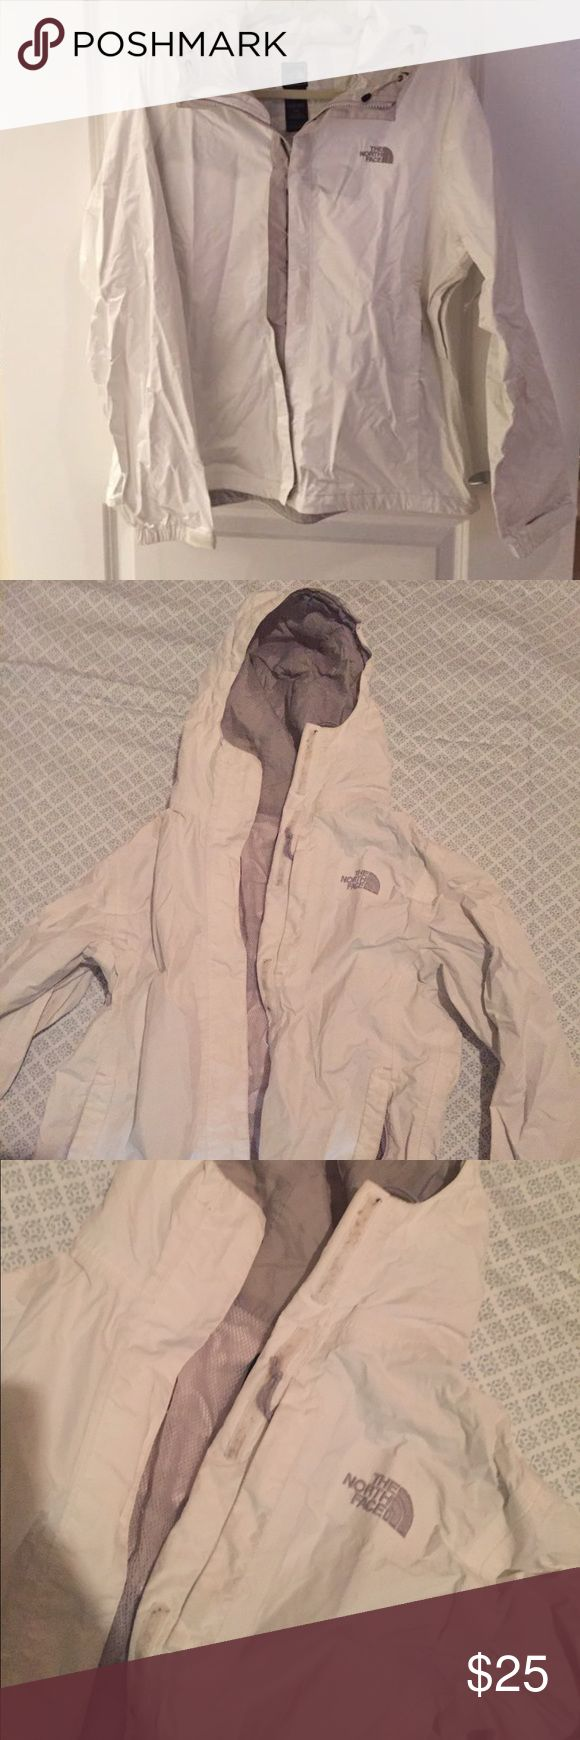 North face women's rain jacket size S White North Face women's rain jacket size small. One tiny spot on the back as shown in photo. Some spots on the velcro not seen when jacket is done up. Great for spring! North Face Jackets & Coats Utility Jackets